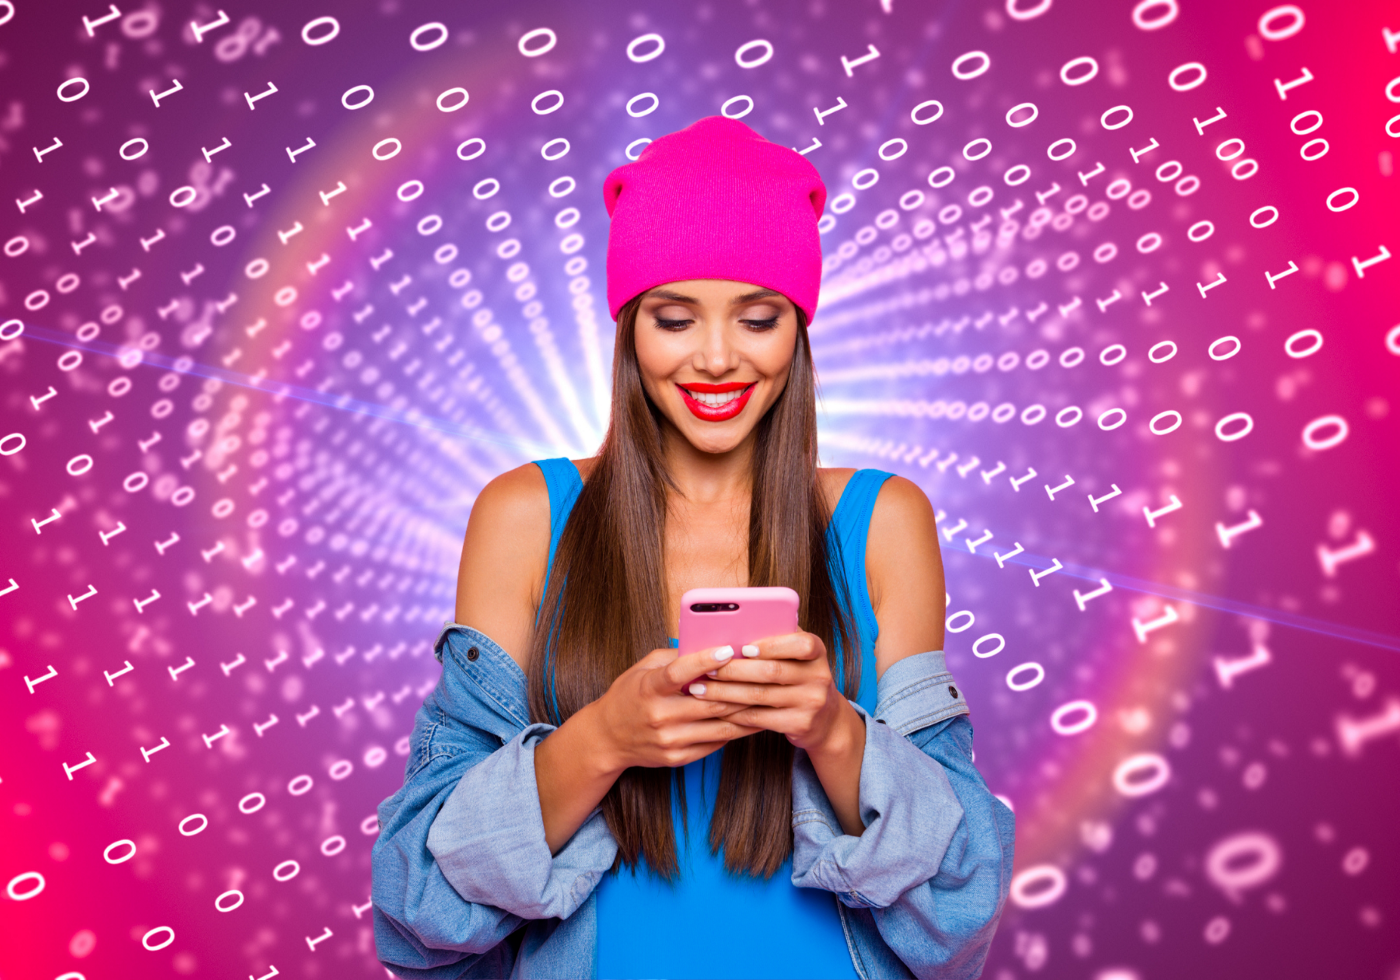 A smiling brunette with a pink beanie, a denim jacket off her shoulders and a blue tank top looks down at her phone. A purple, pink and white background of binary (1s and 0s) radiates from her.